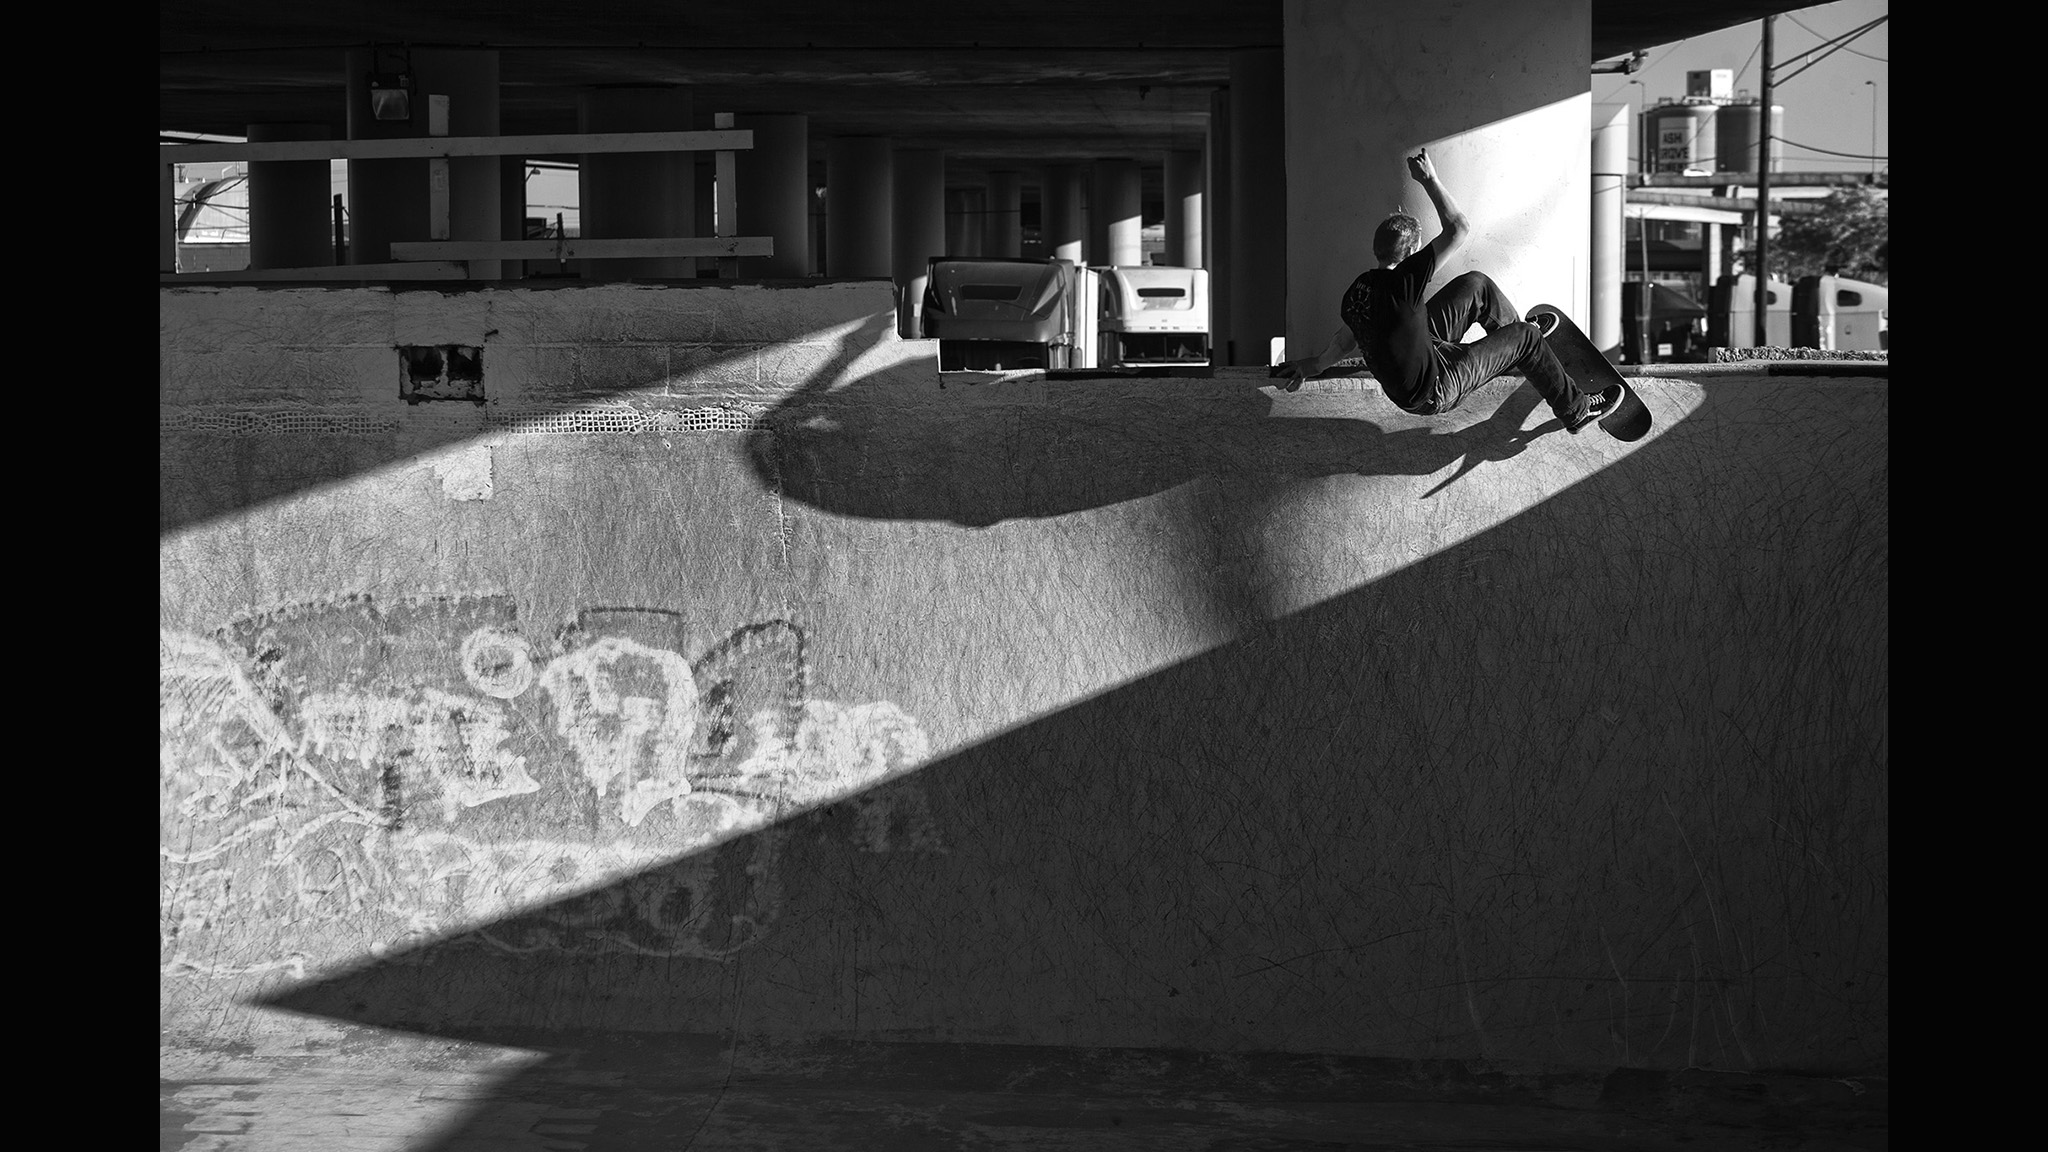 John Fitzgerald, Layback Smith grind